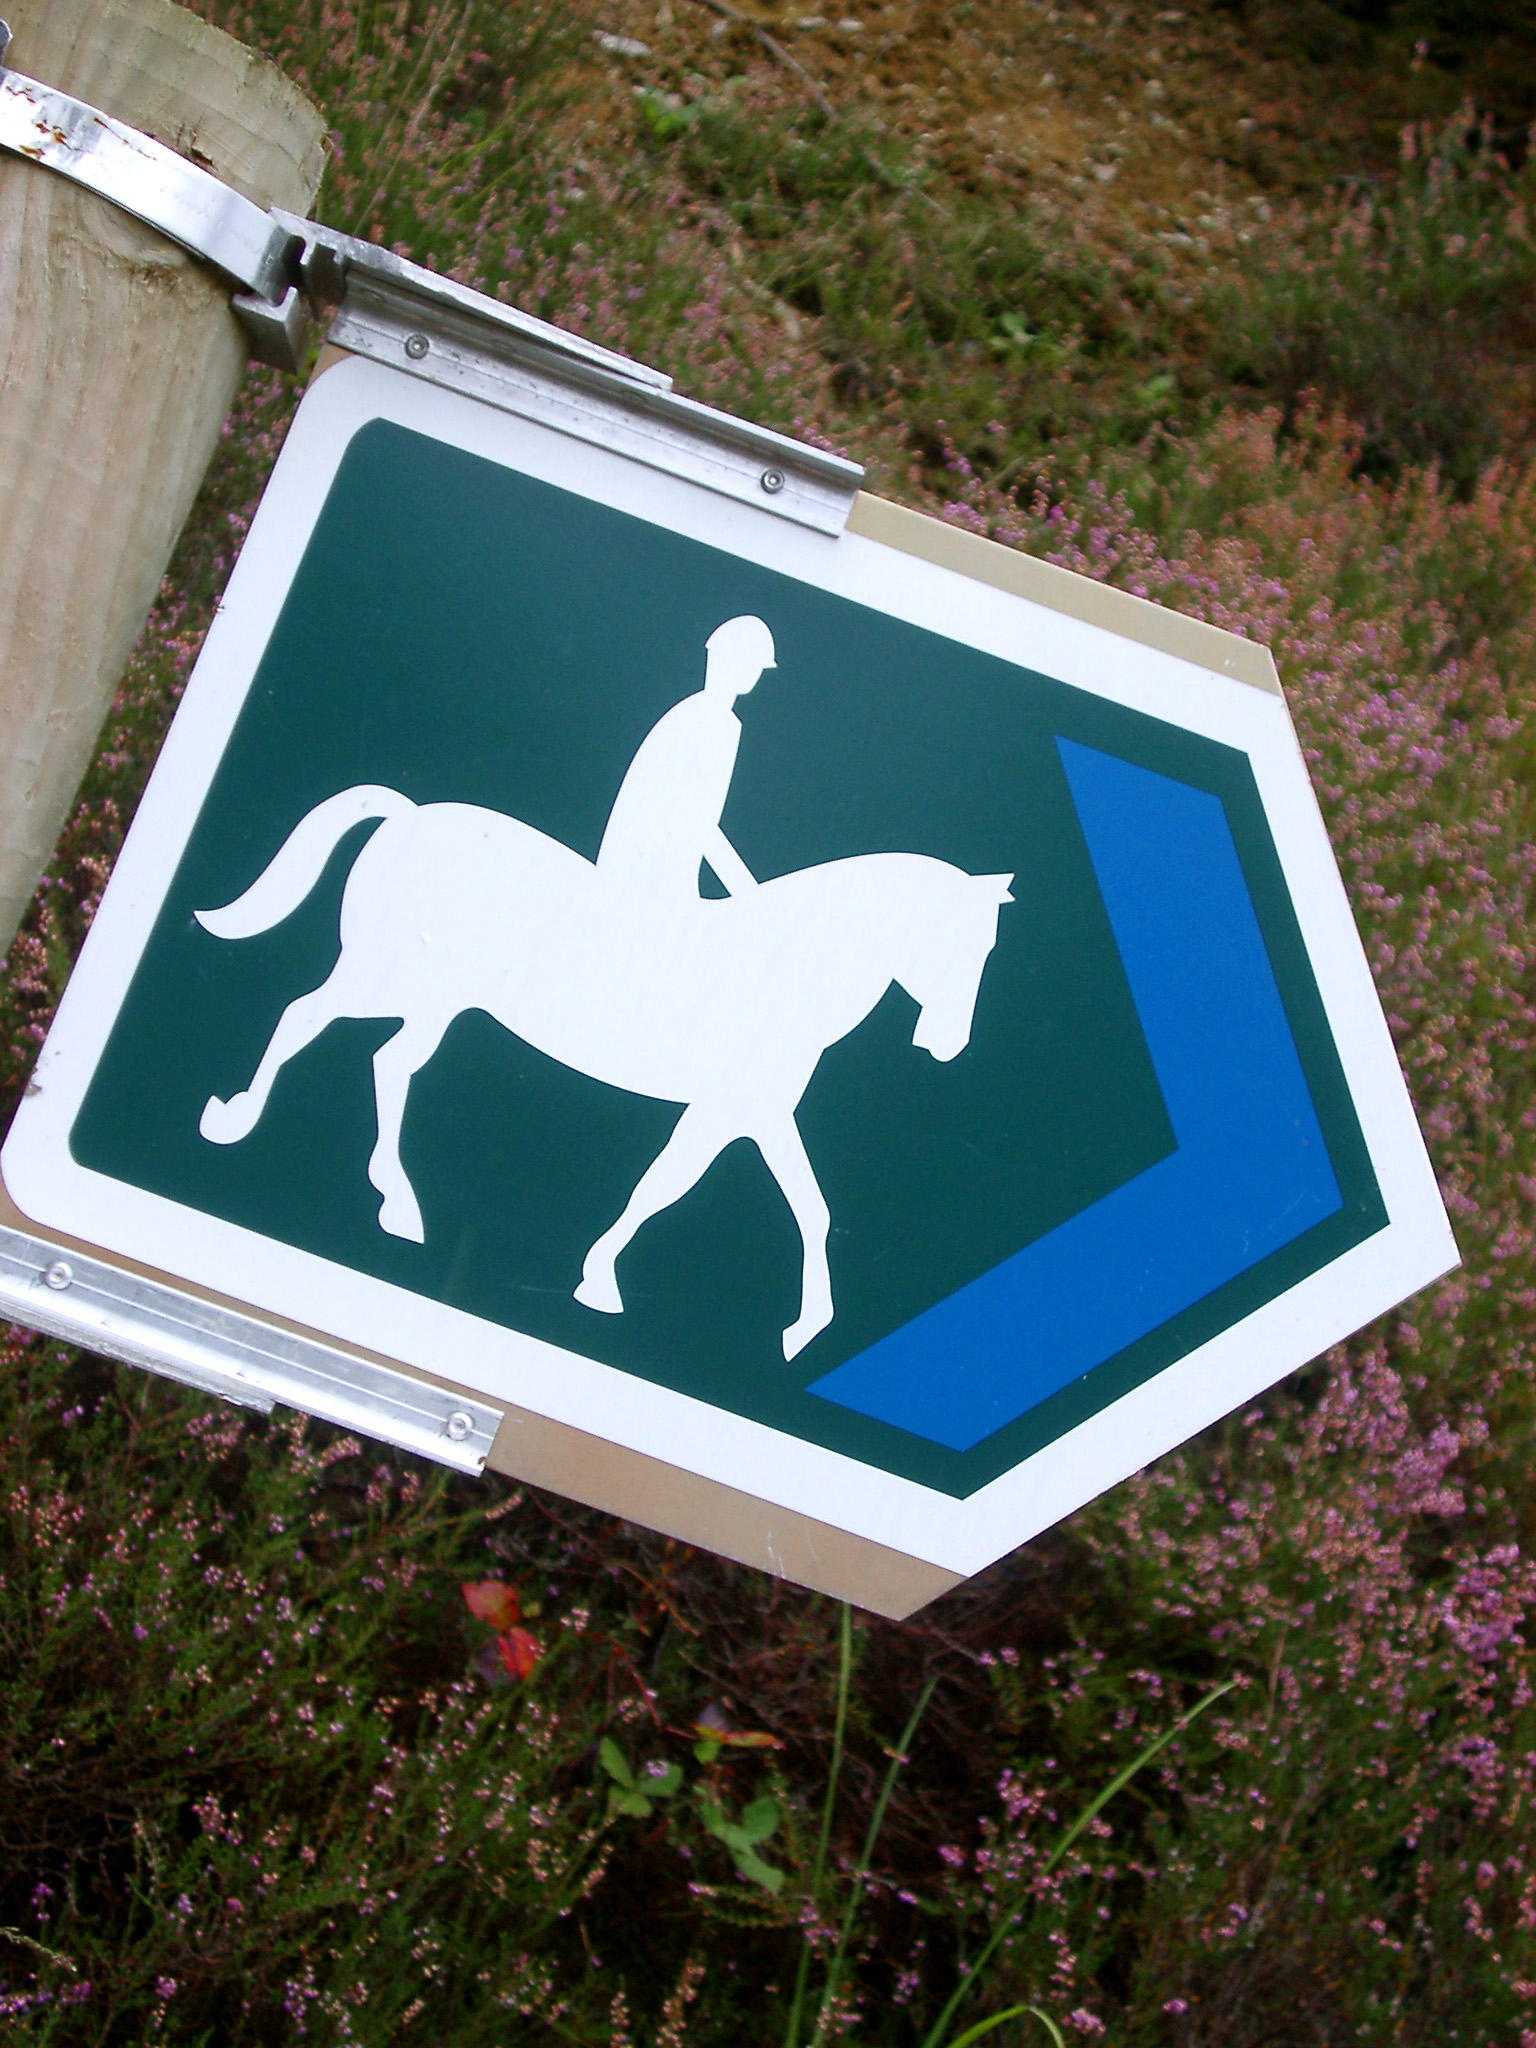 Bridal Path sign with a right pointing arrow and white silhouetted figure of a person on horseback attached to a wooden pole outdoors